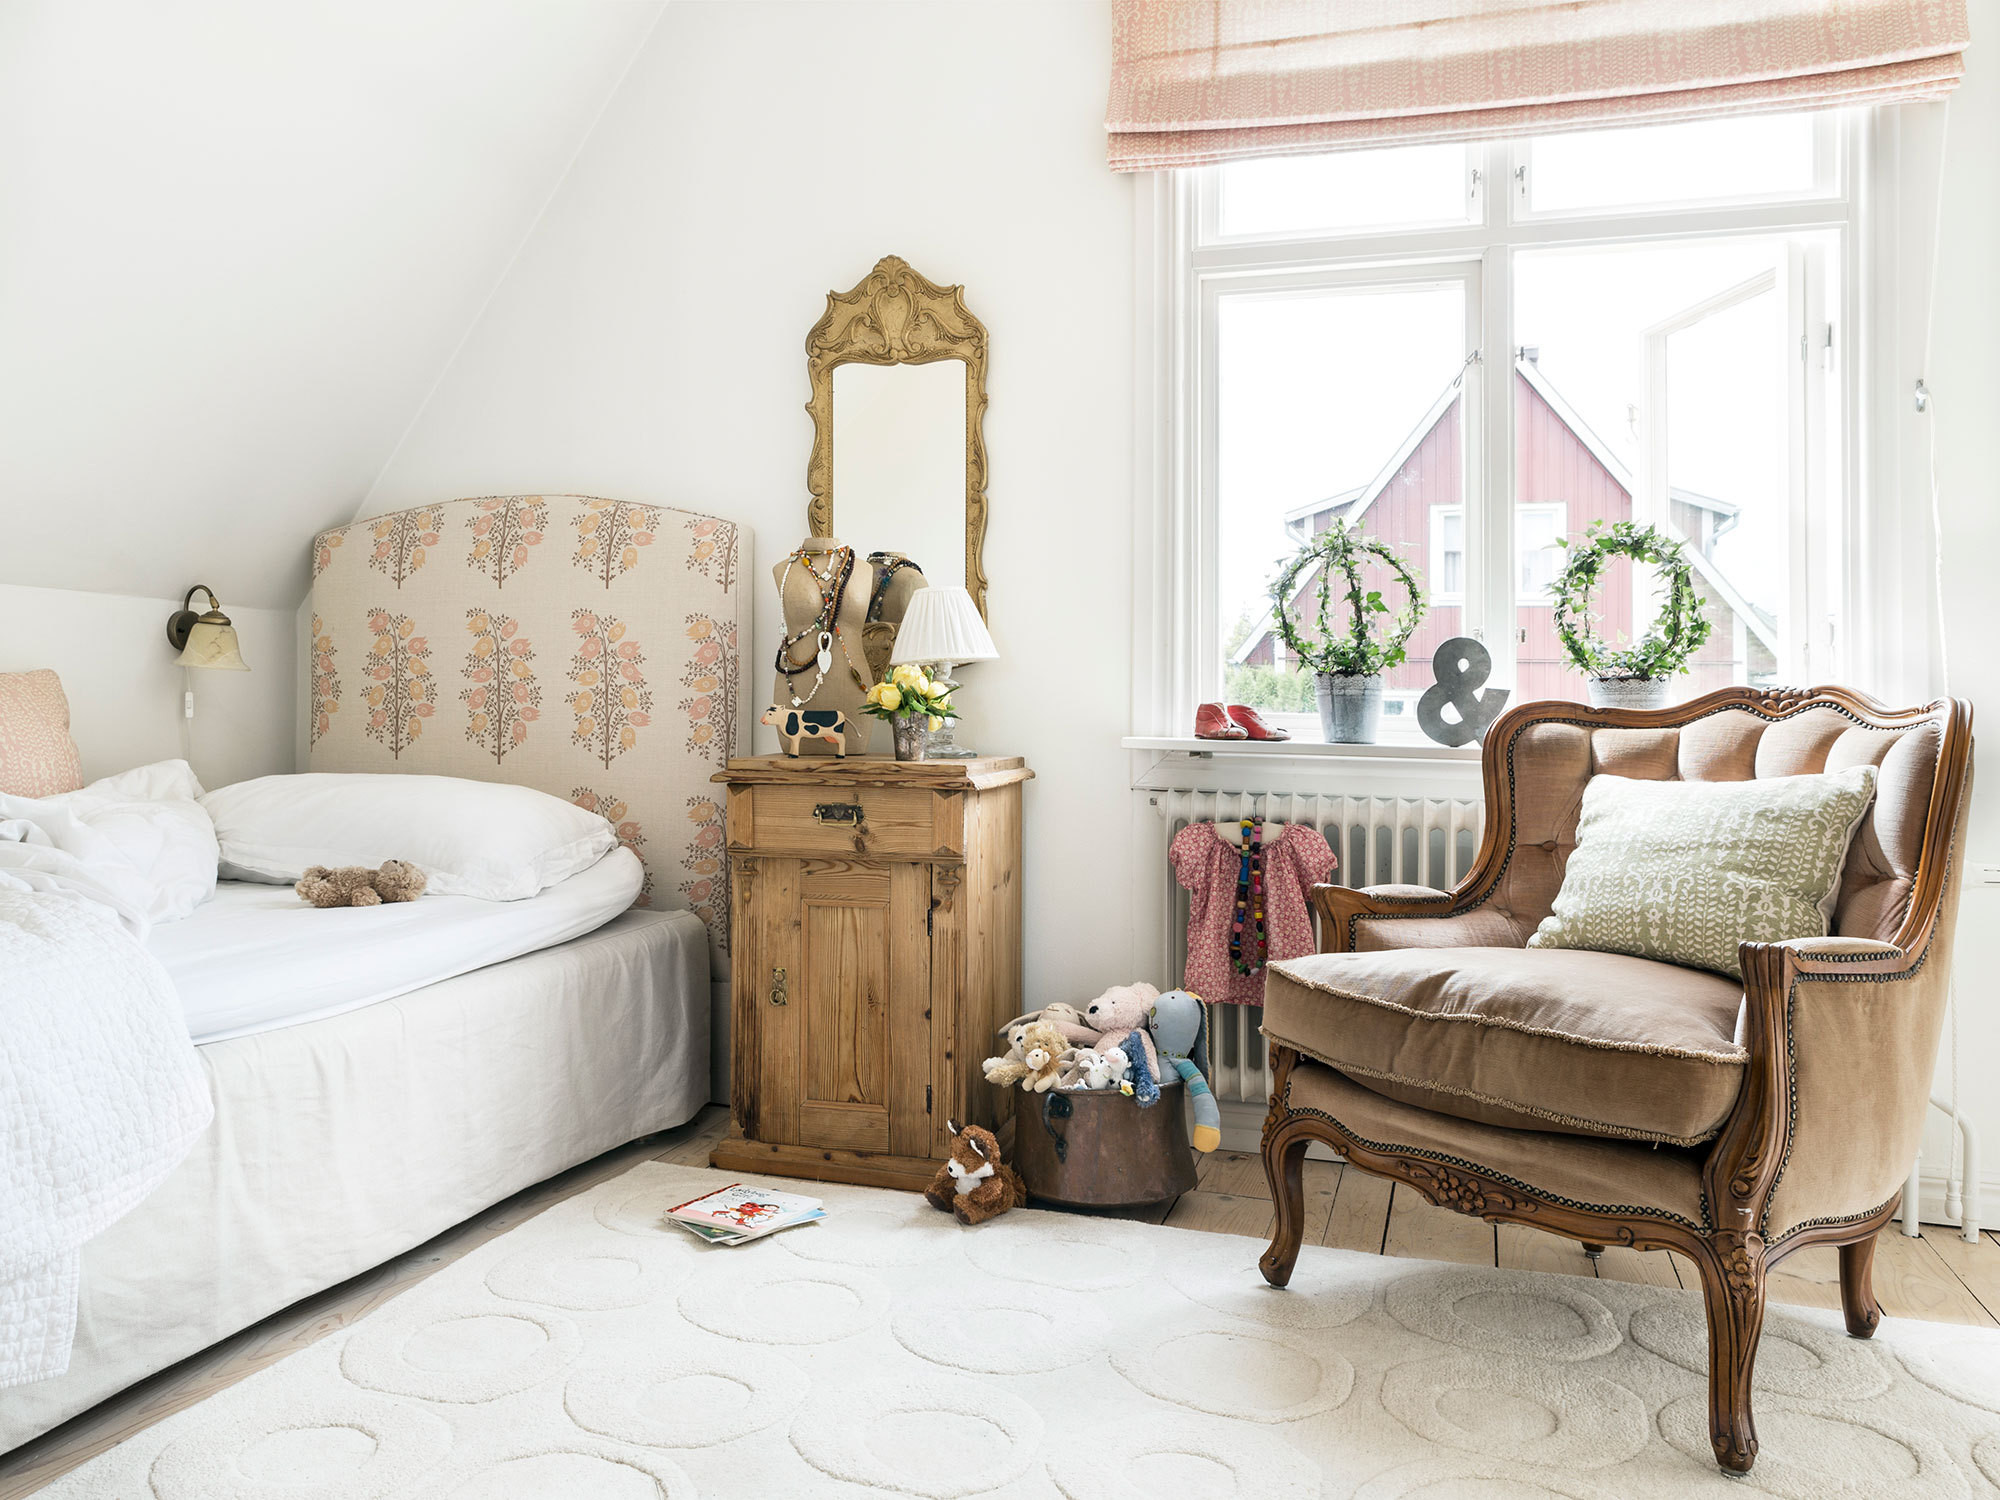 Liv's bedroom features designer fabrics (including Raoul Textiles on the headboard and Roman shade) and well-chosen antiques.